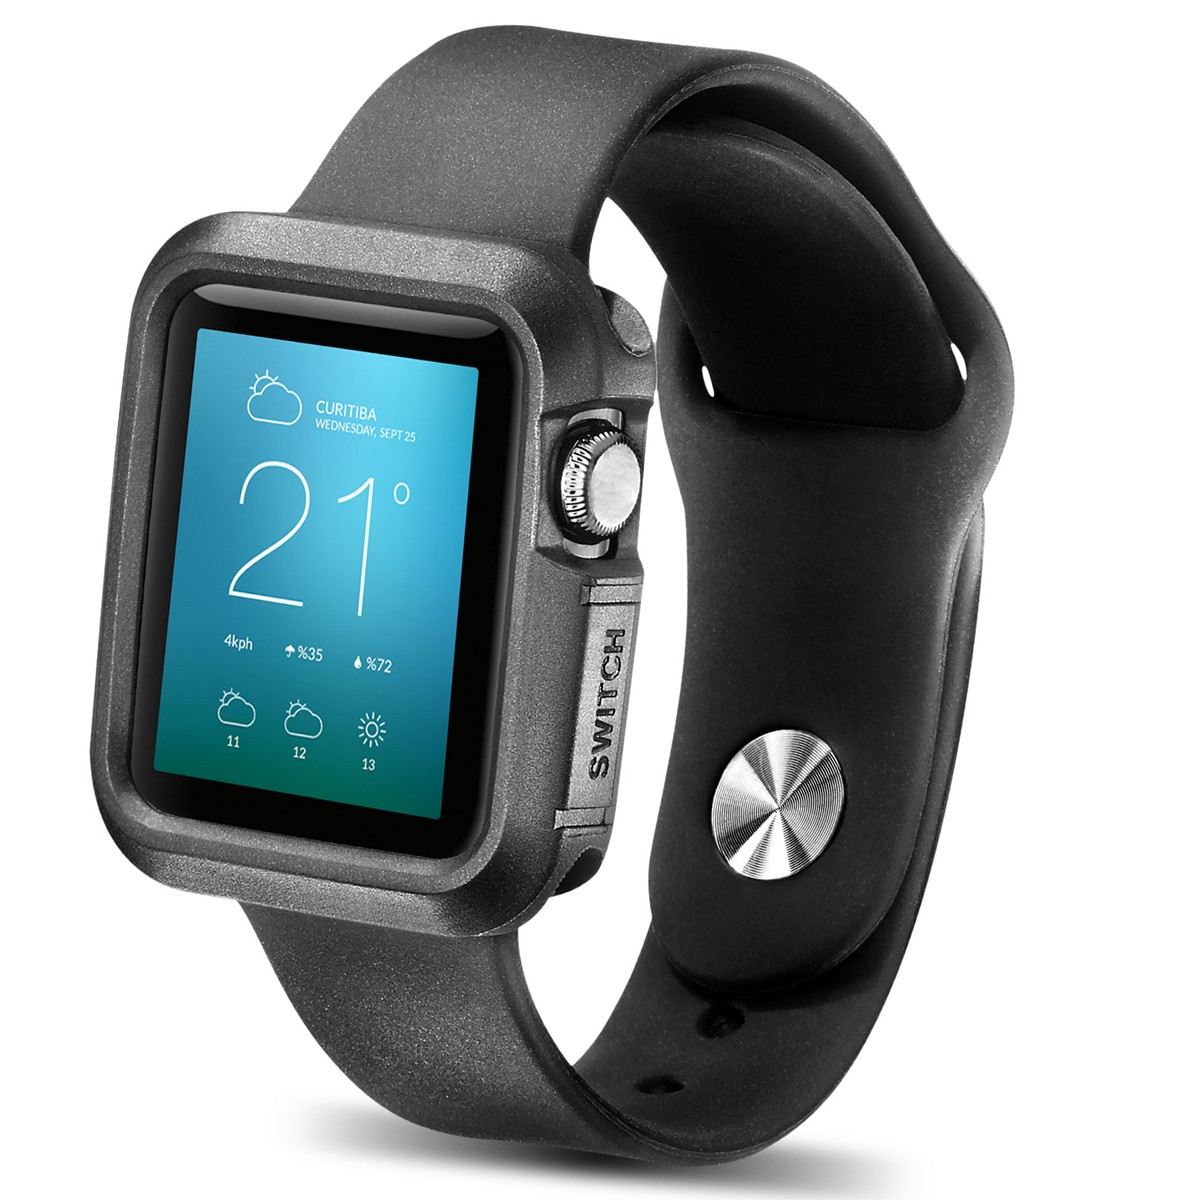 Apple Watch Case, New Trent TPU Cases for Apple Watch / Watch Sport / Watch Edition 2015 Release 38 mm